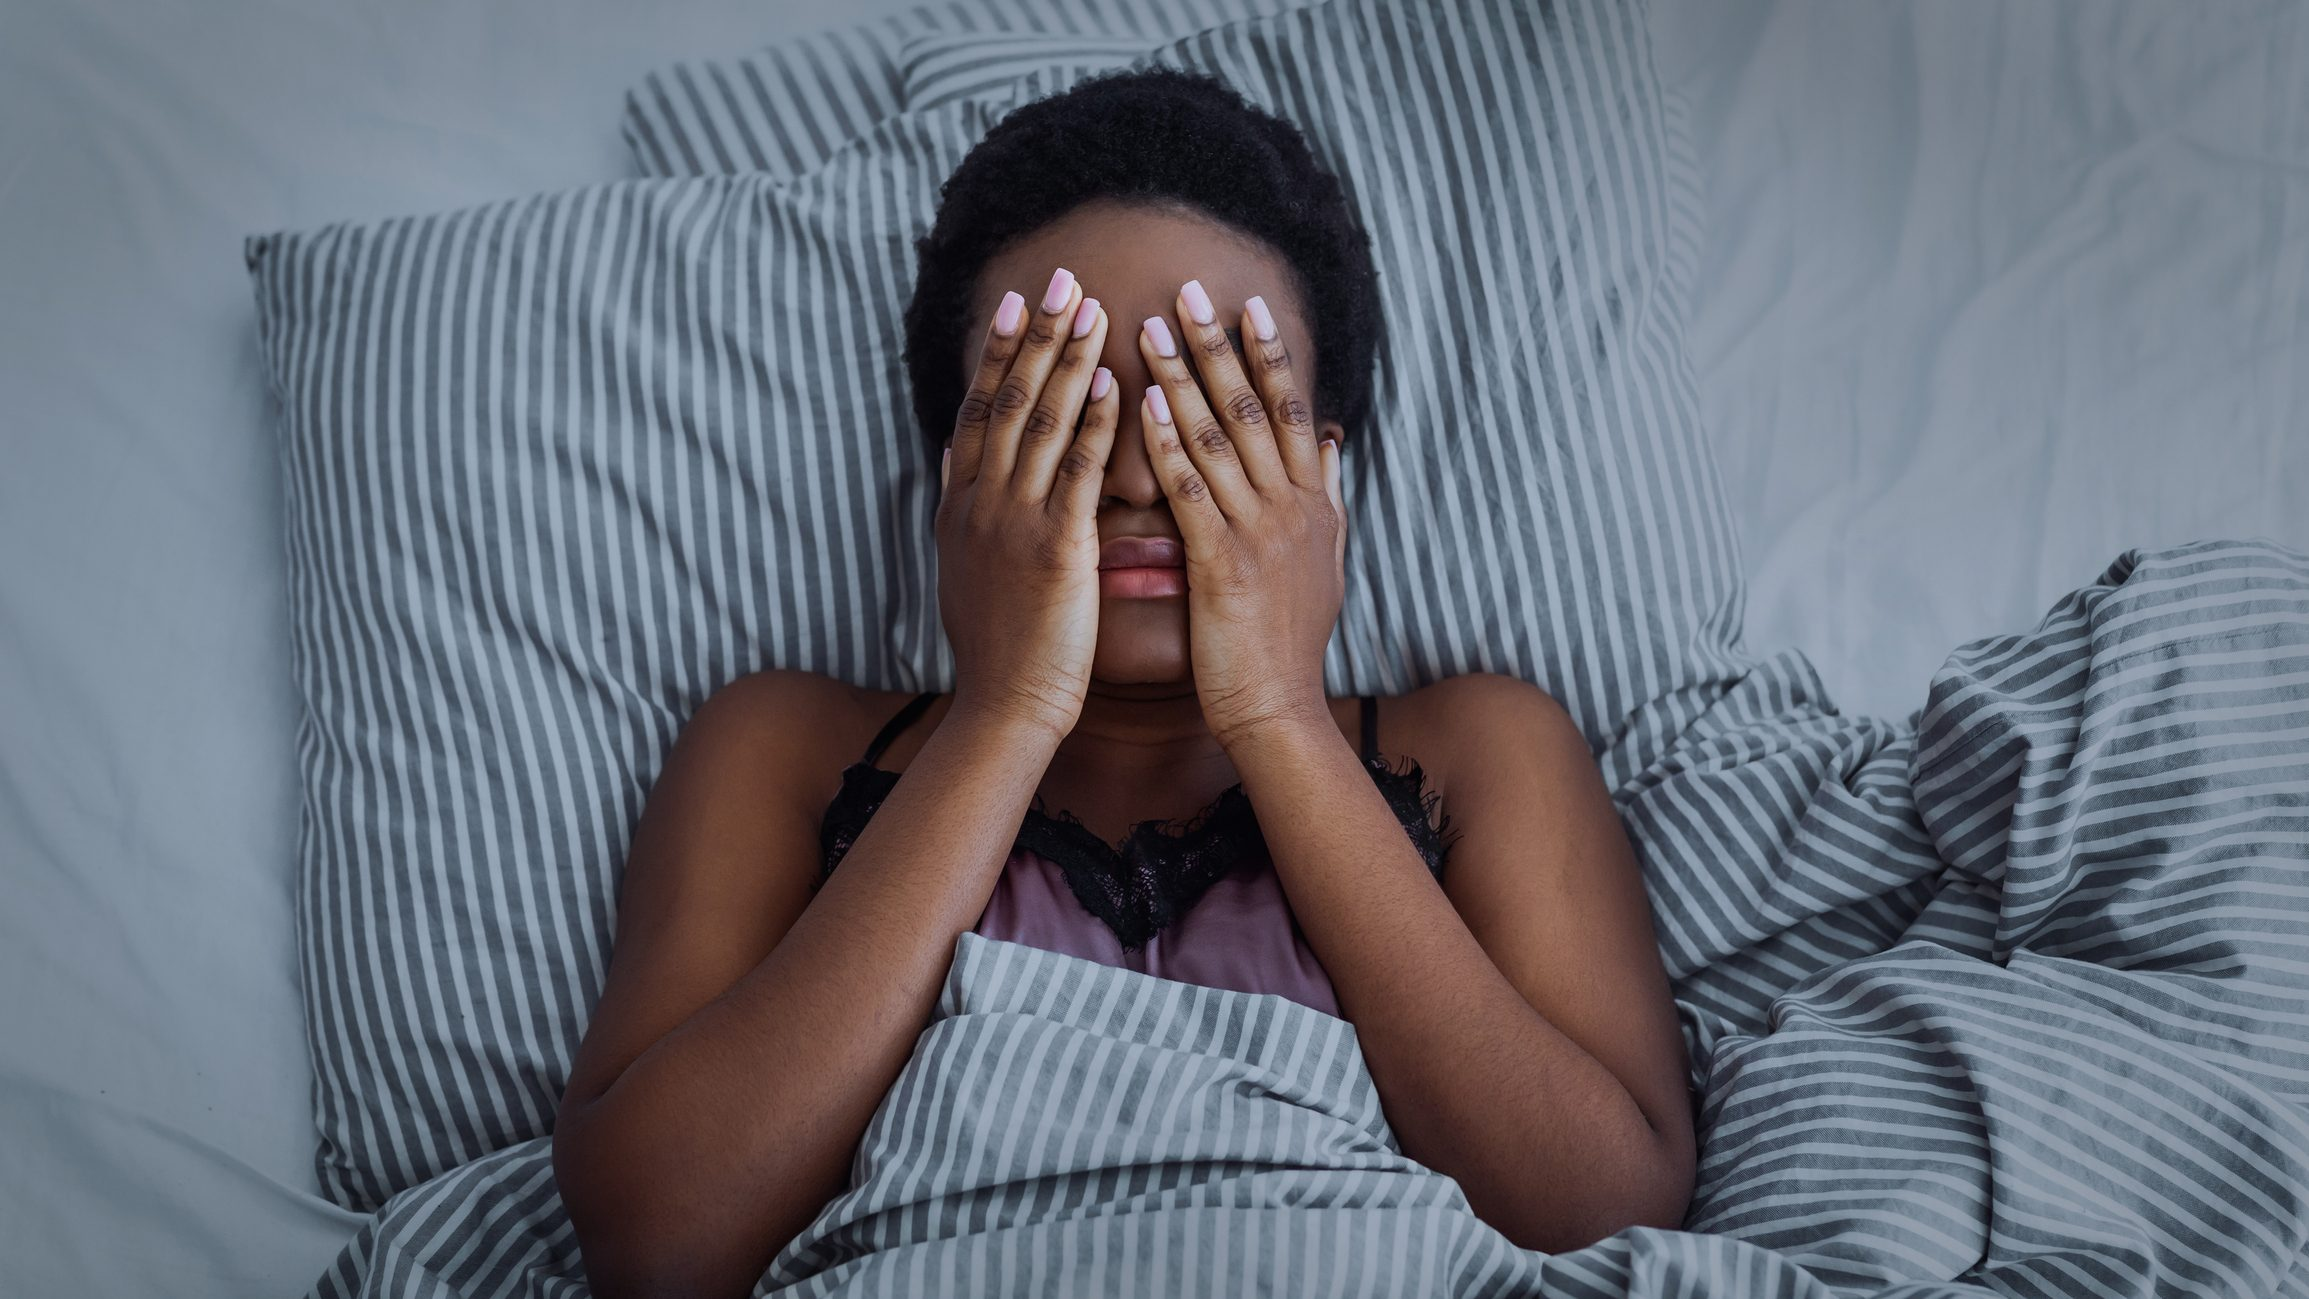 African american girl closed eyes with hands in bed